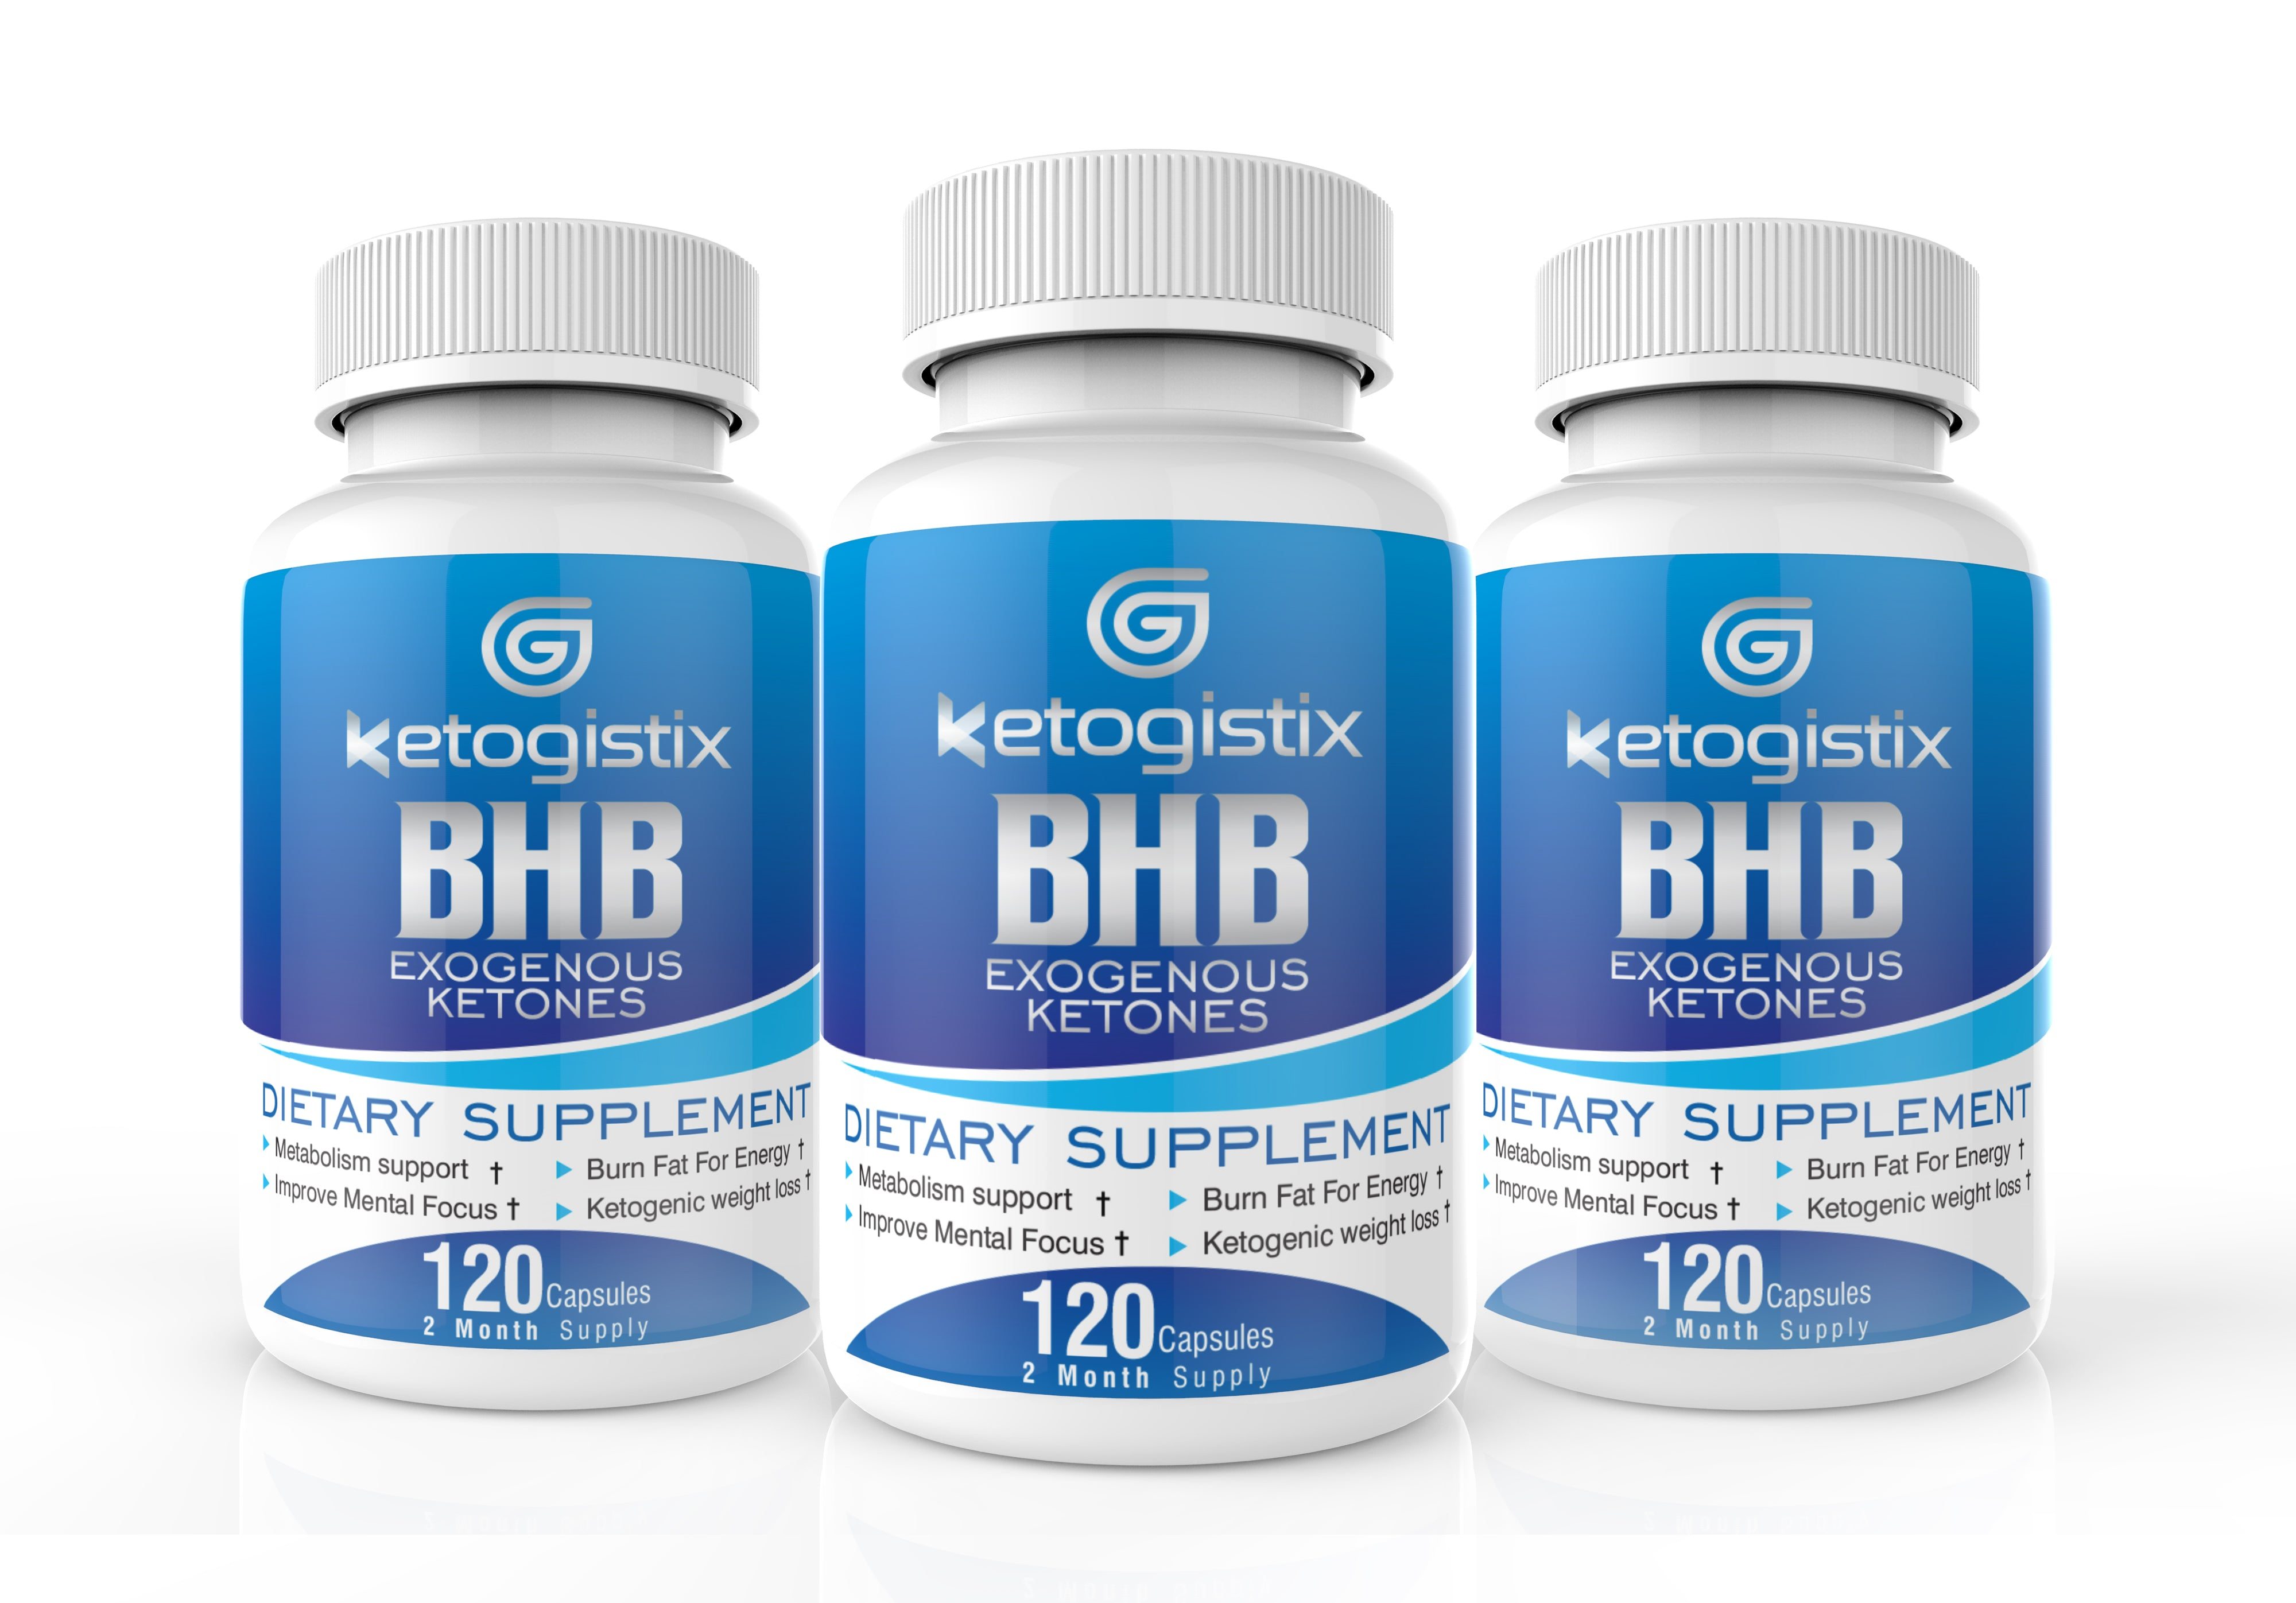 Ketogistix BHB Exogenous Ketones 3-Pack Bundle